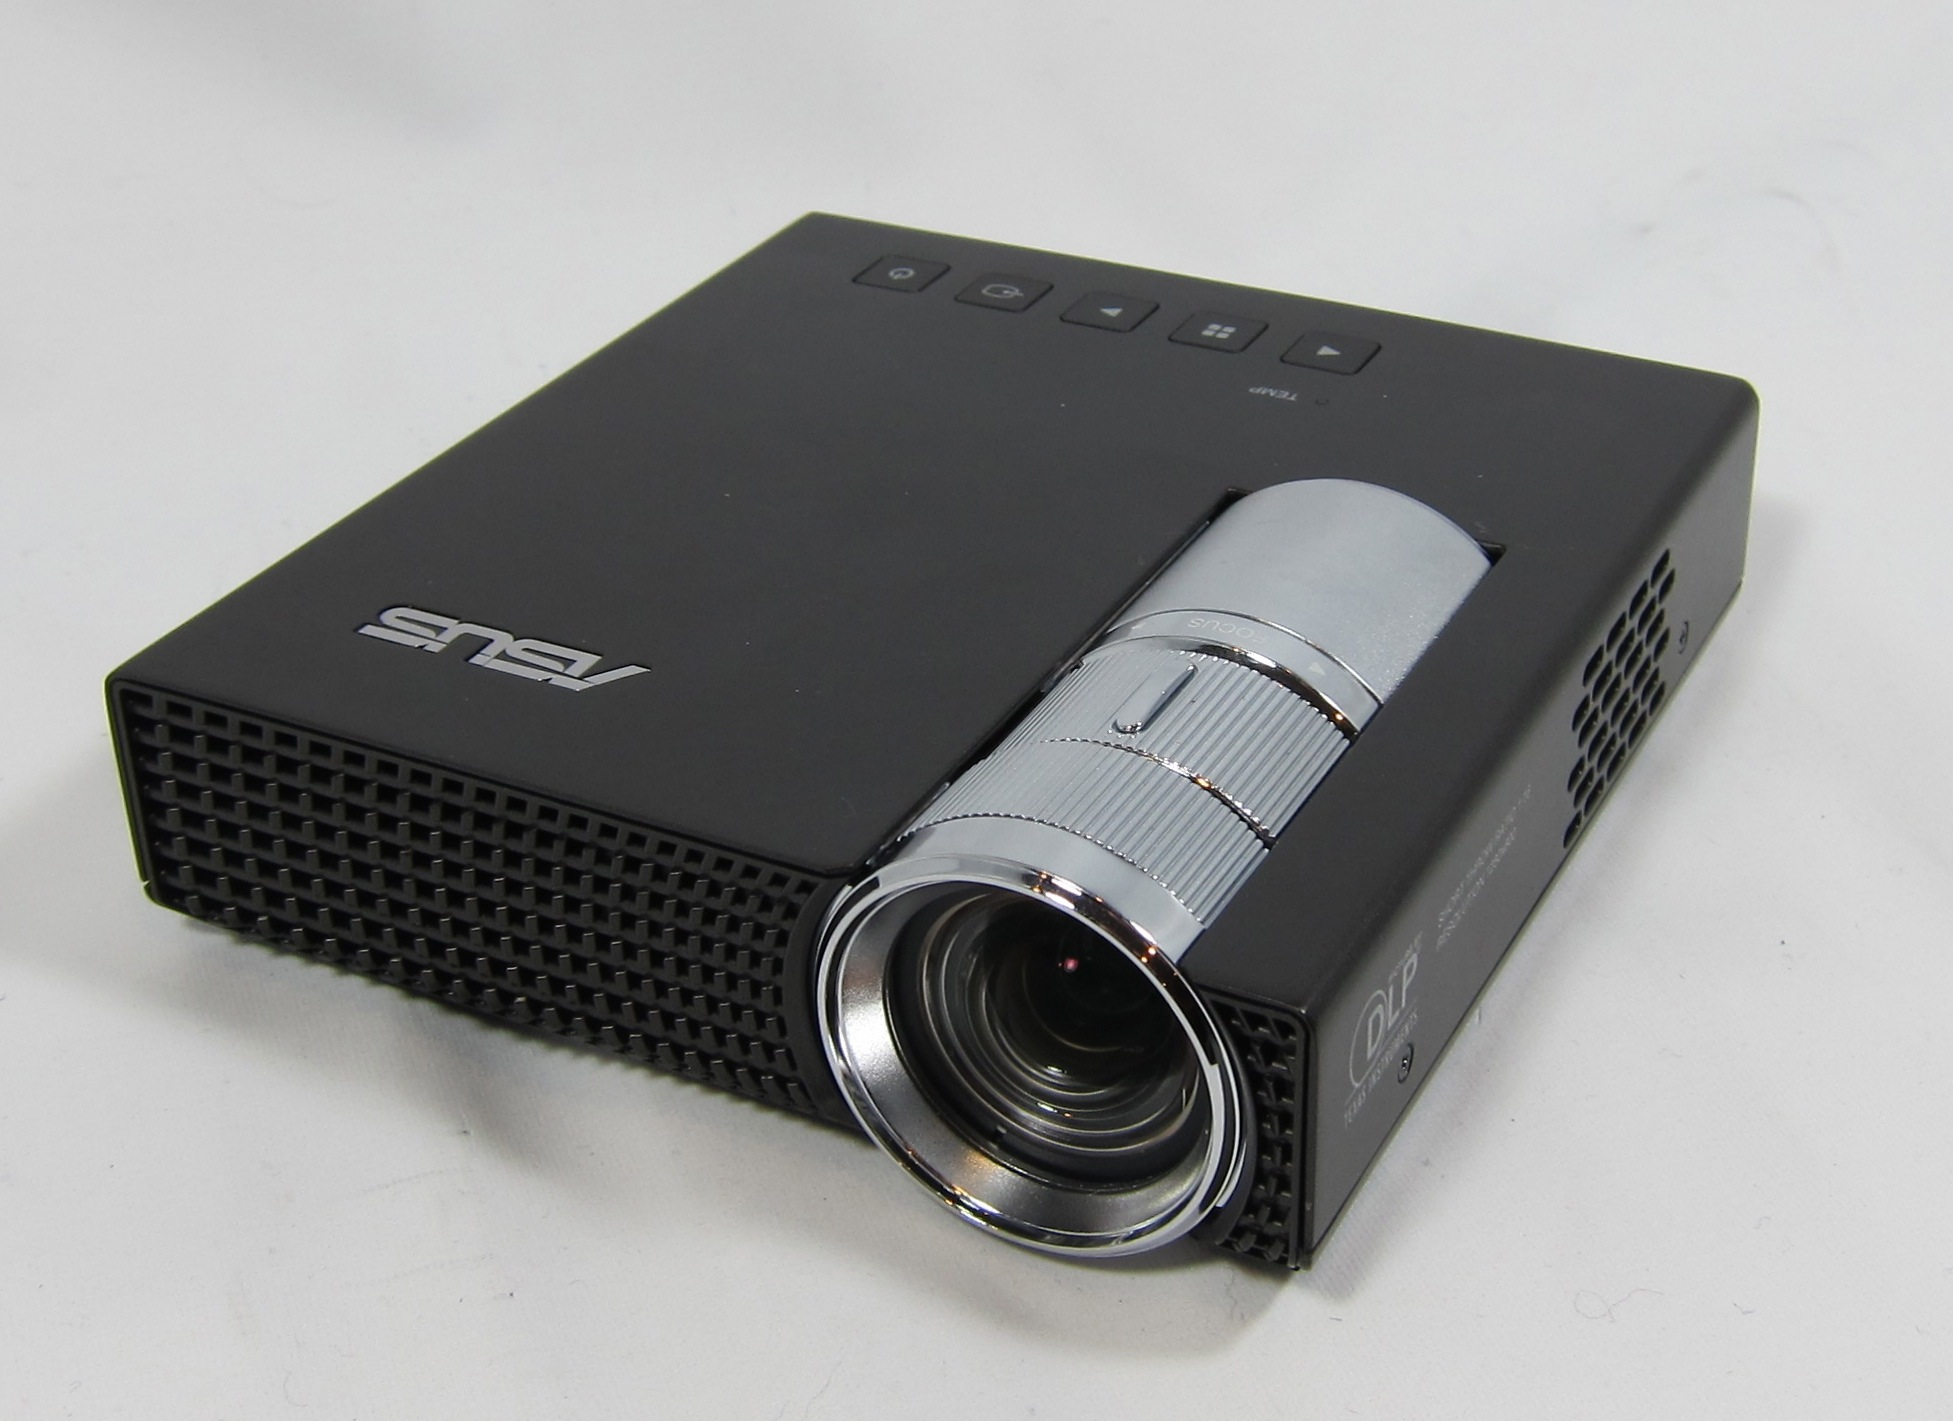 Portable projector bing images for Portable video projector